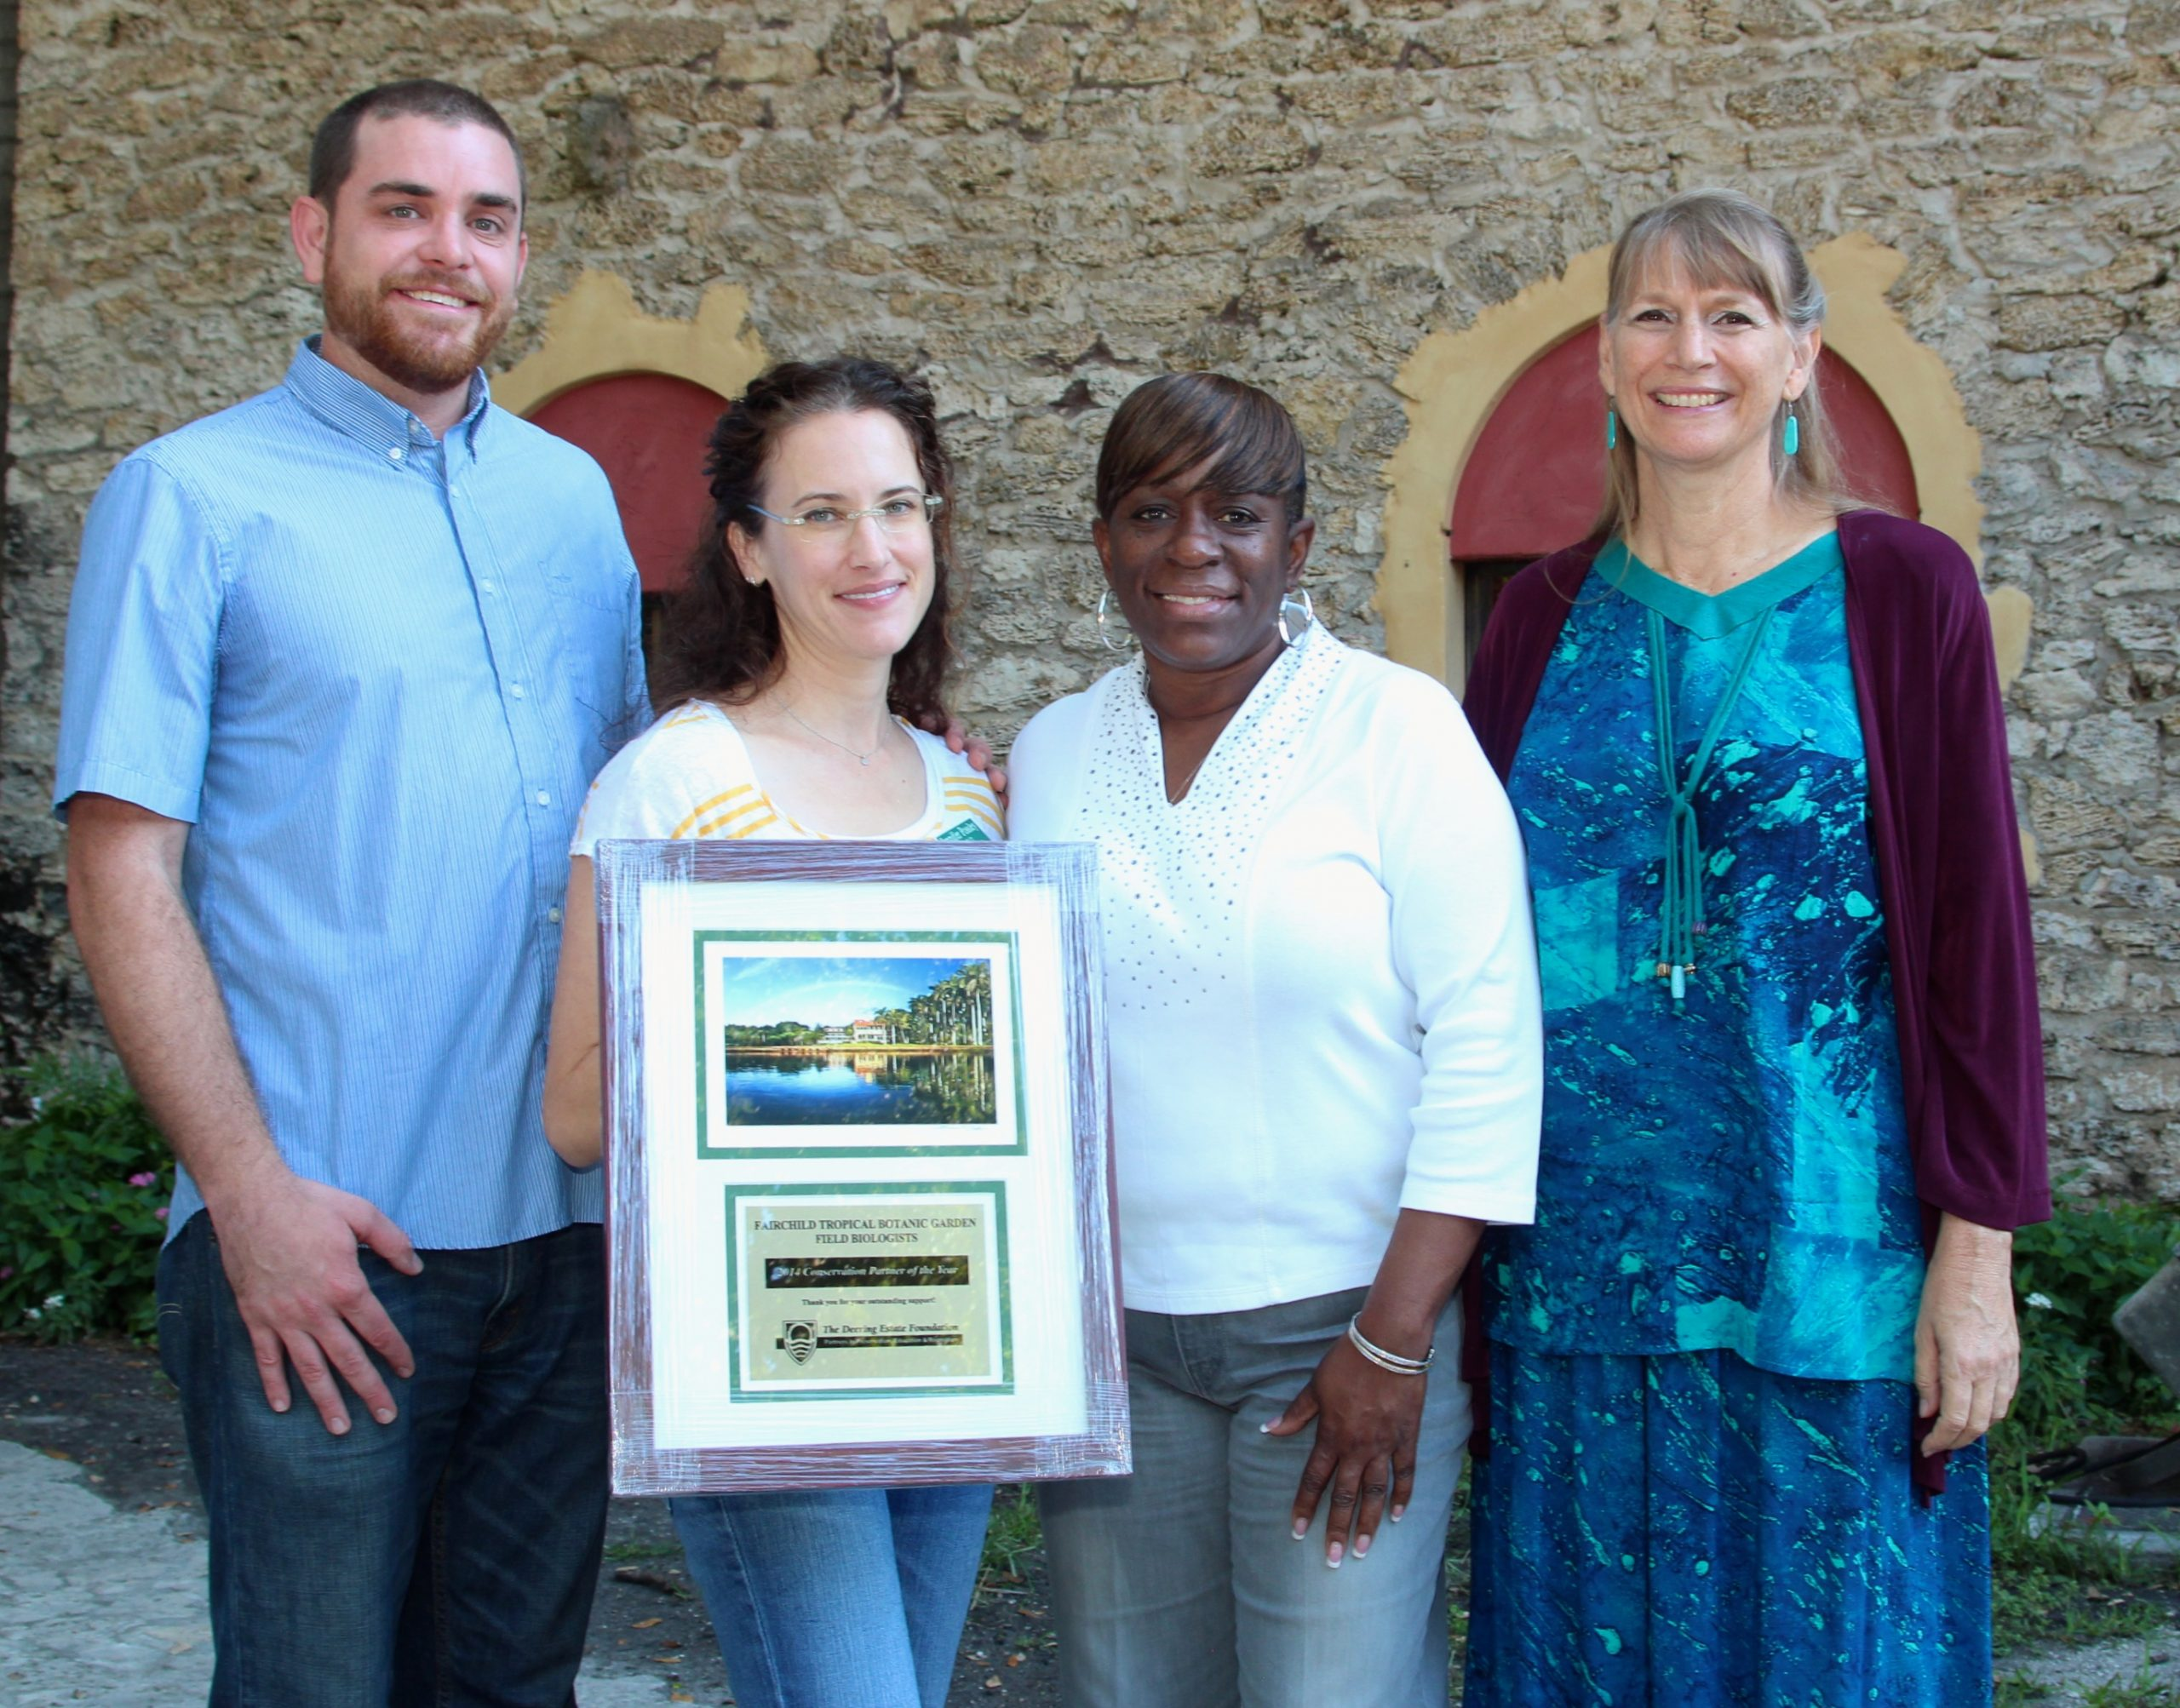 The Fairchild Tropical Botanic Garden field biologists earned the Conservation Partner of the Year Award from the Deering Estate Foundation under Joyce's leadership.